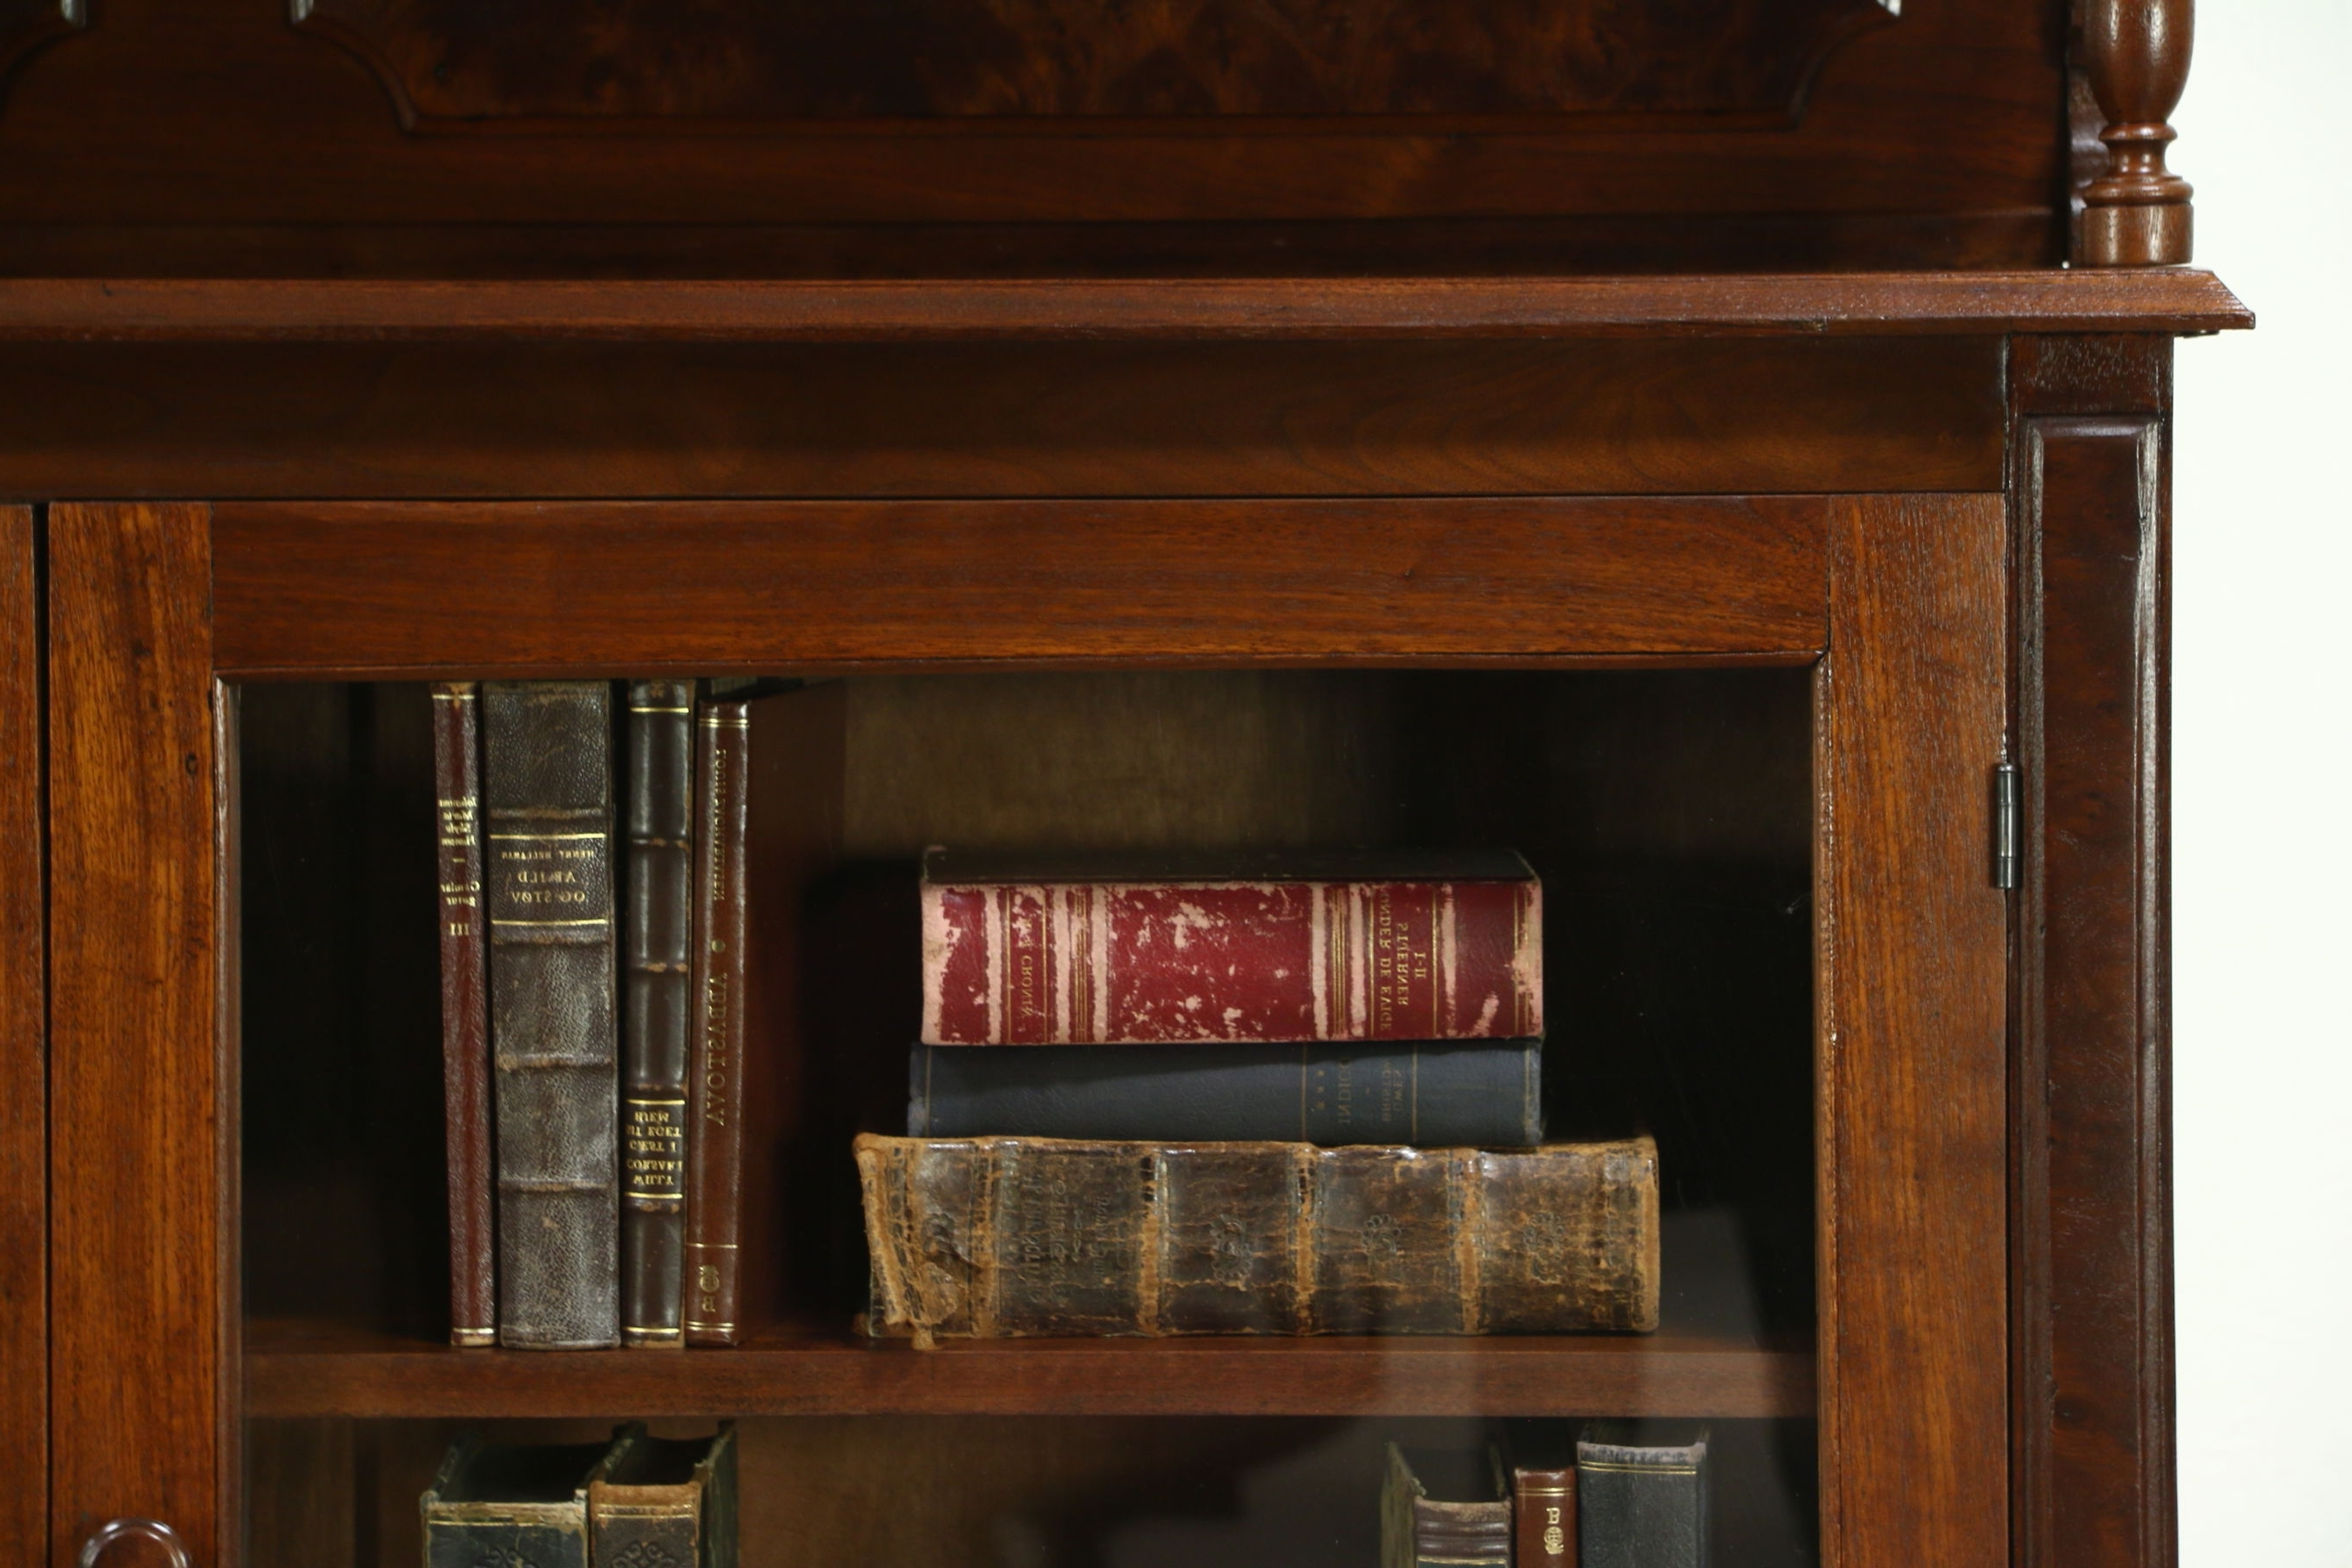 Victorian 1880 Antique Walnut Library Bookcase, Adjustable Shelves Throughout 2017 Walnut Bookcases (View 8 of 15)